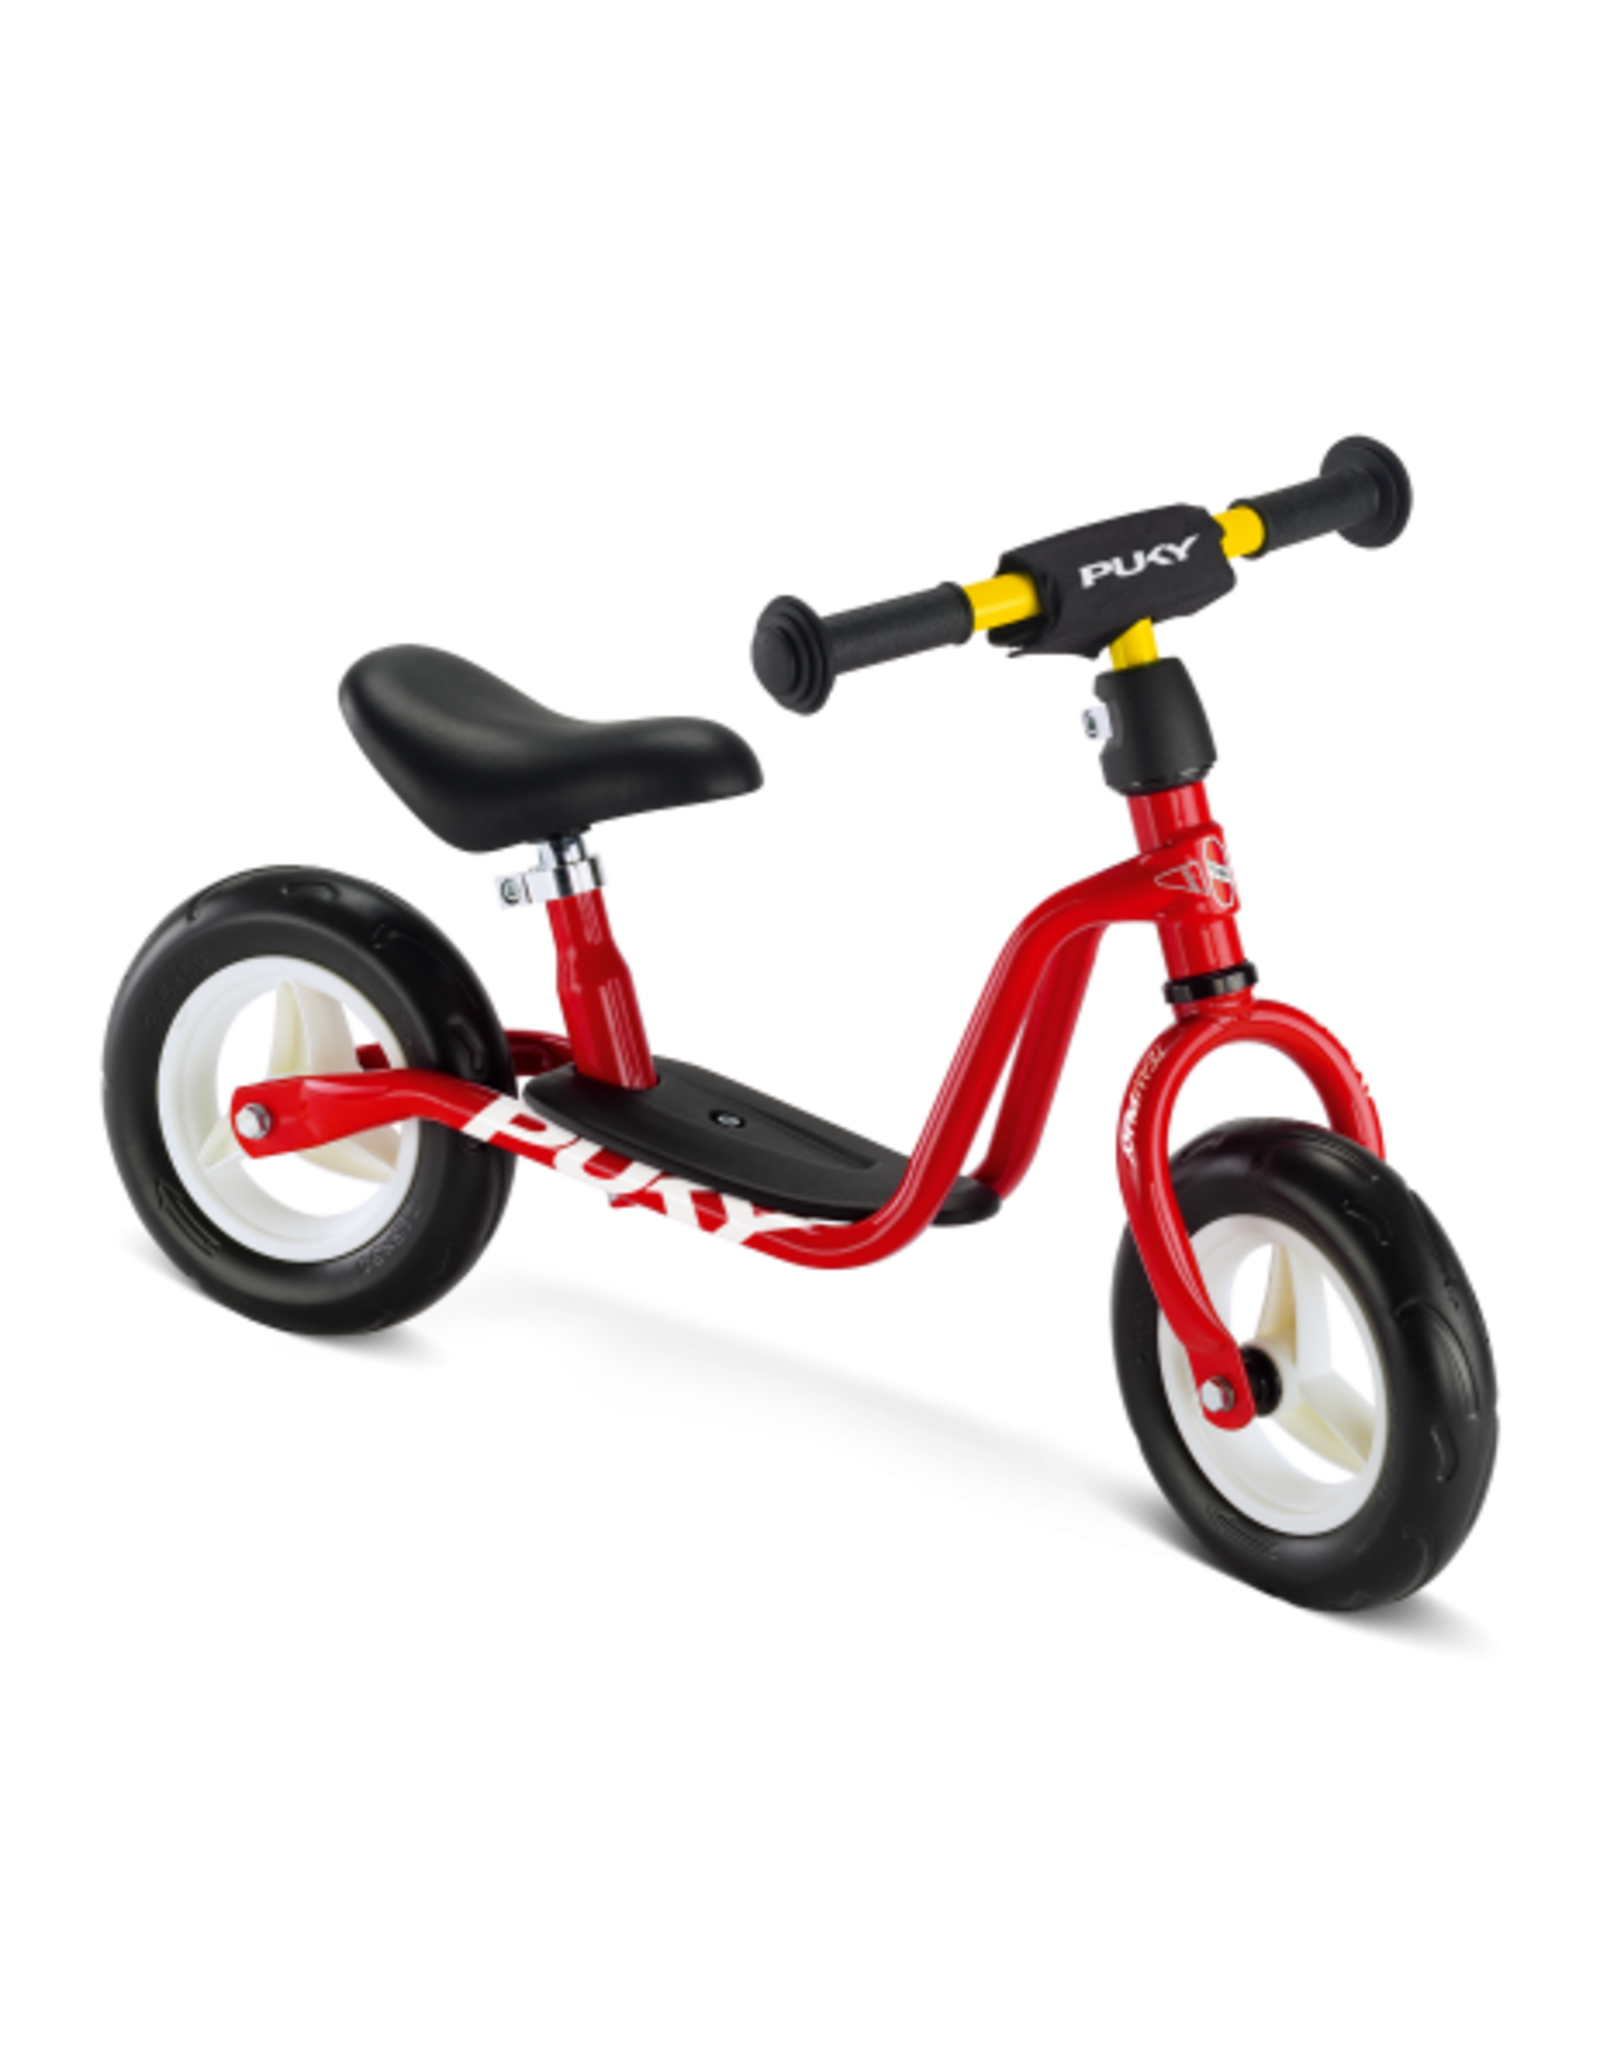 Puky Puky 4064 LRM Balance Bike red - Altoys - toys and more